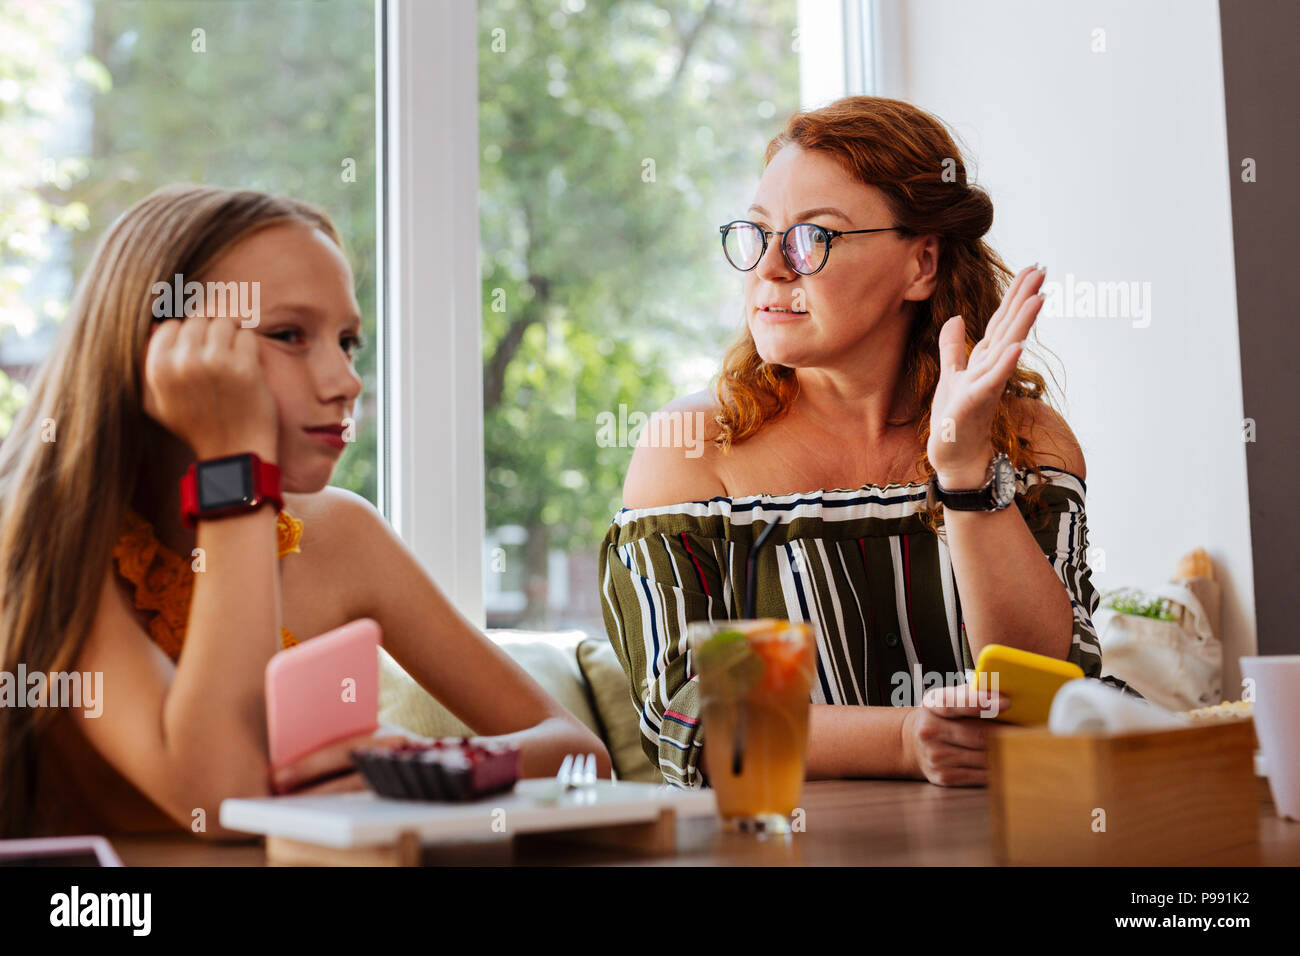 Serious mother wearing glasses having conflict with her daughter - Stock Image